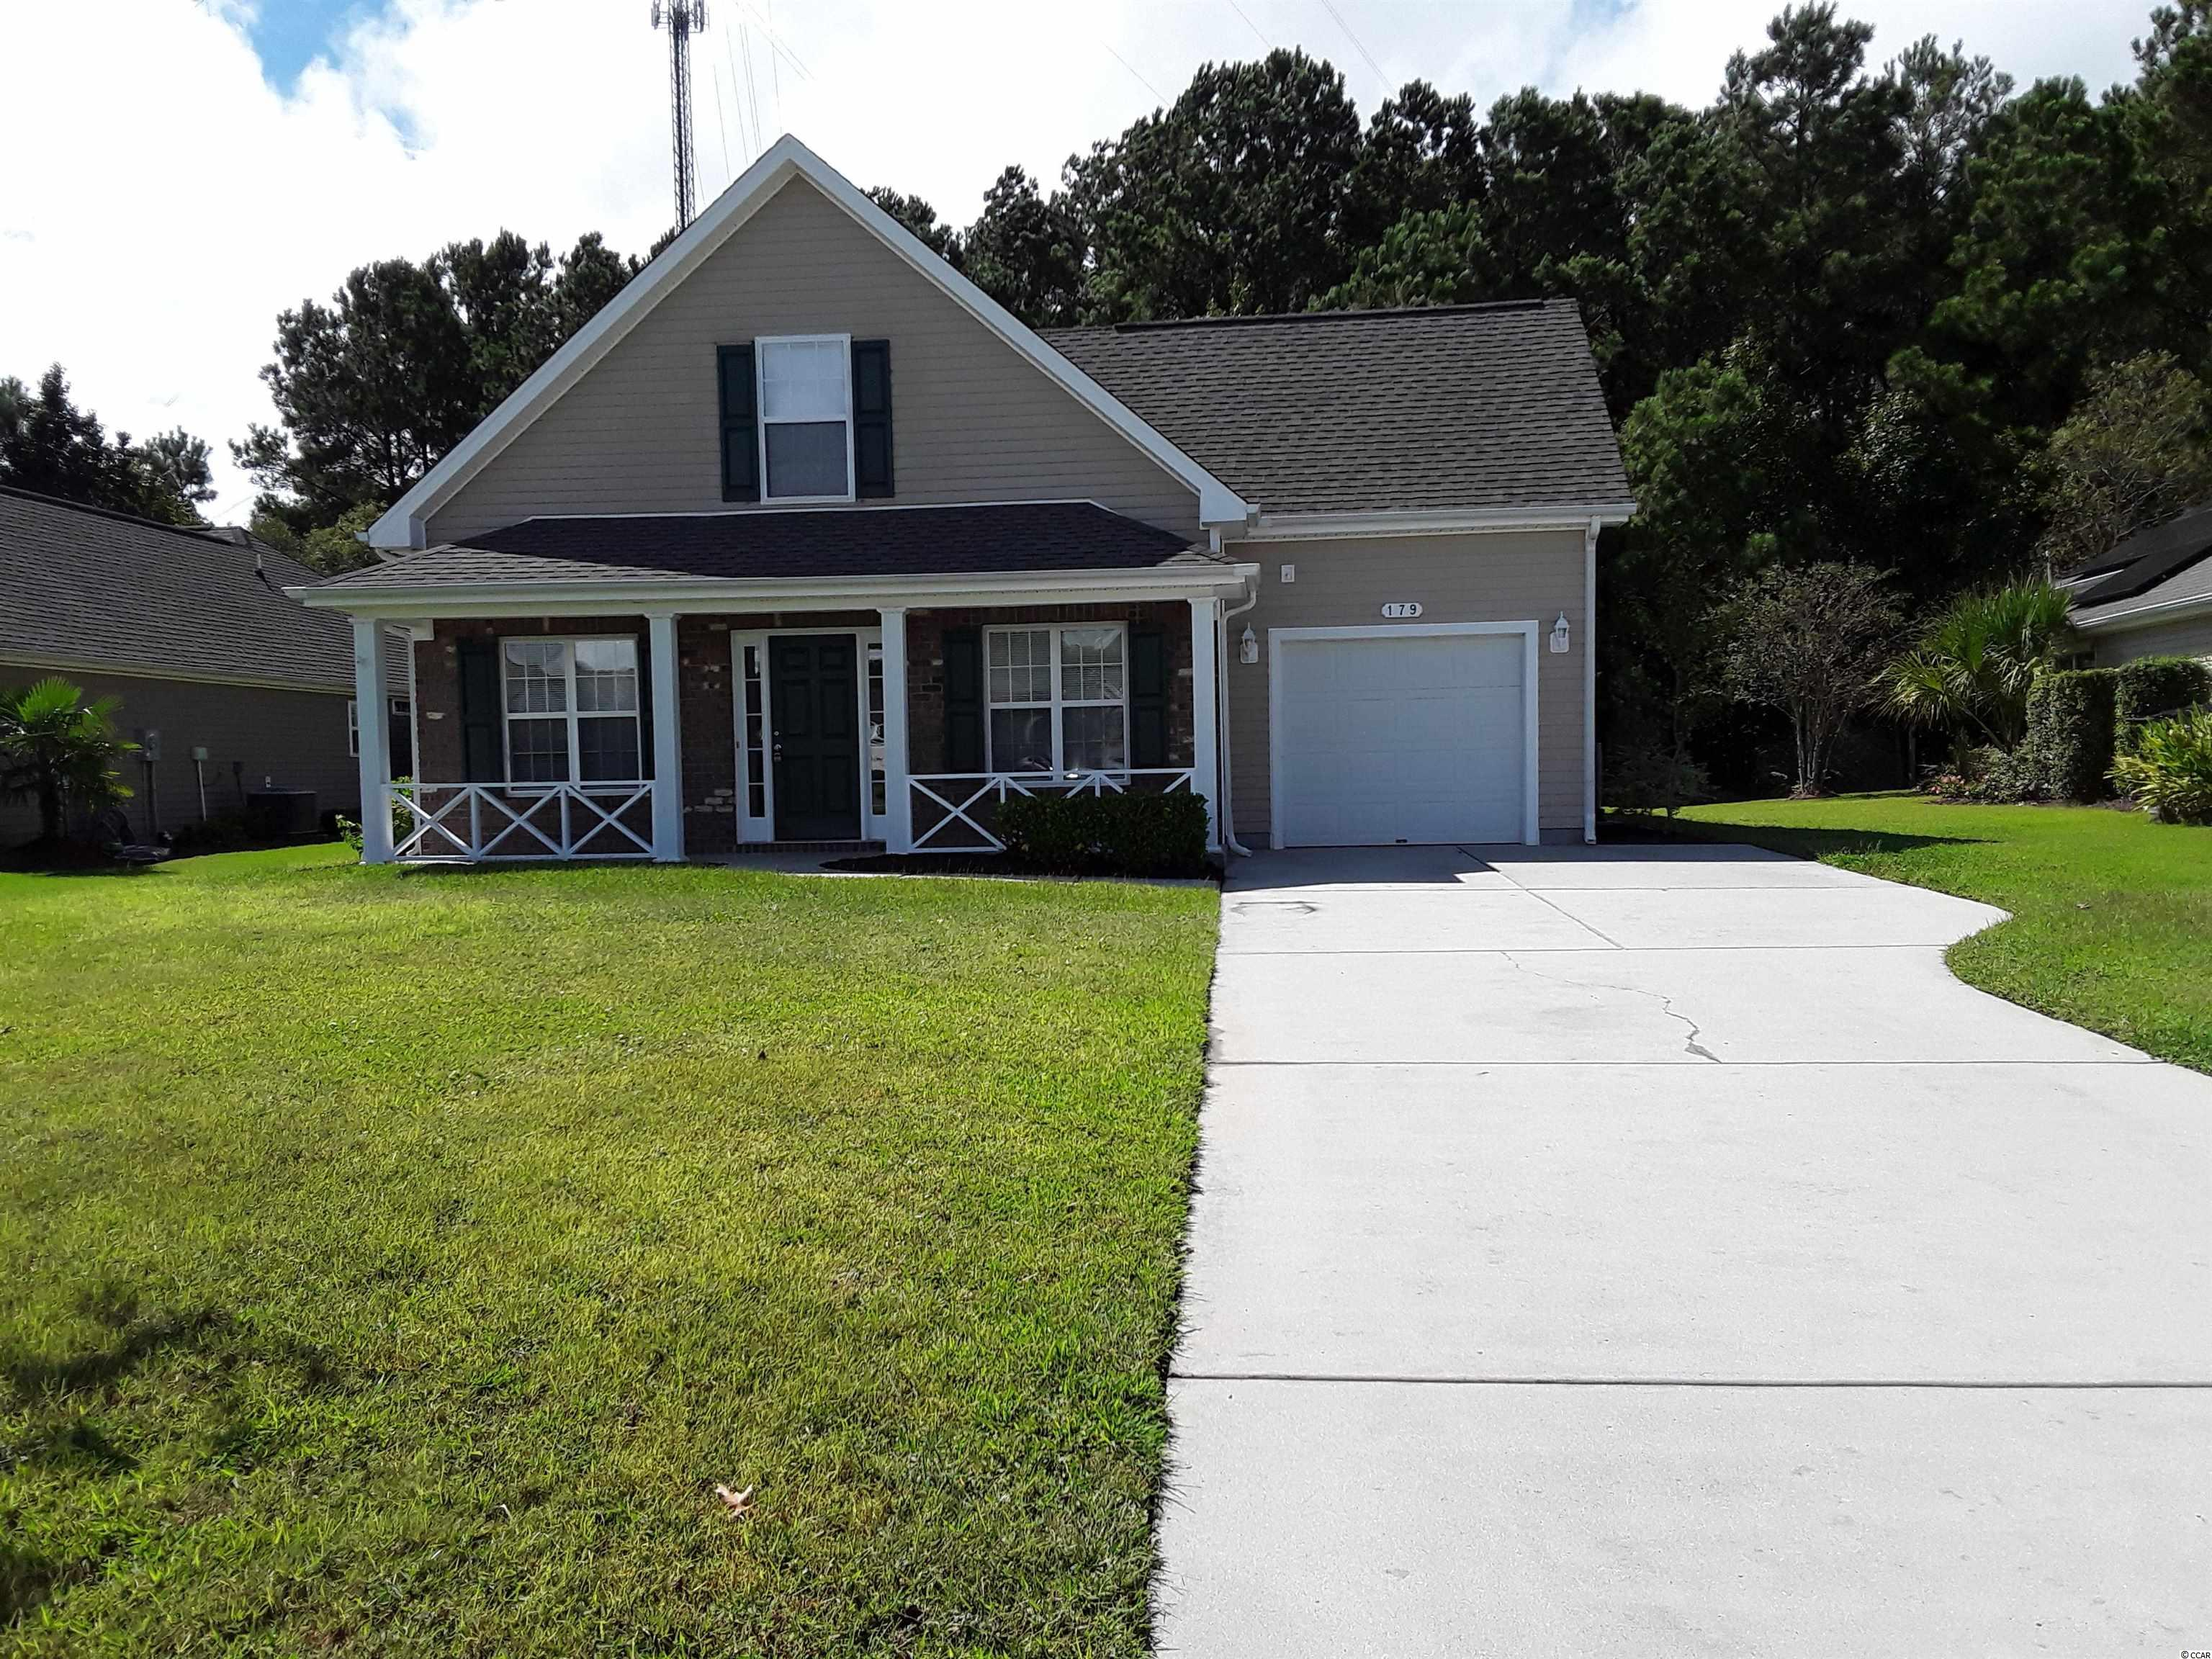 THIS IS A D.R.HORTON TRADITIONAL STYLE HOME WITH NEW APPLIANCES, FLOORING AND HVAC SYSTEM. Located in a golf course community at the challenging International Club in Murrells Inlet, this home offers many  amenities, including a community swimming pool, workout facilities and meeting rooms   The three bedroom, 2 and a half bath layout is perfect.  The home, built in 2007, including the entry level master bedroom/bath suite, is freshly and tastefully refurbished. And the home comes with great neighbors!